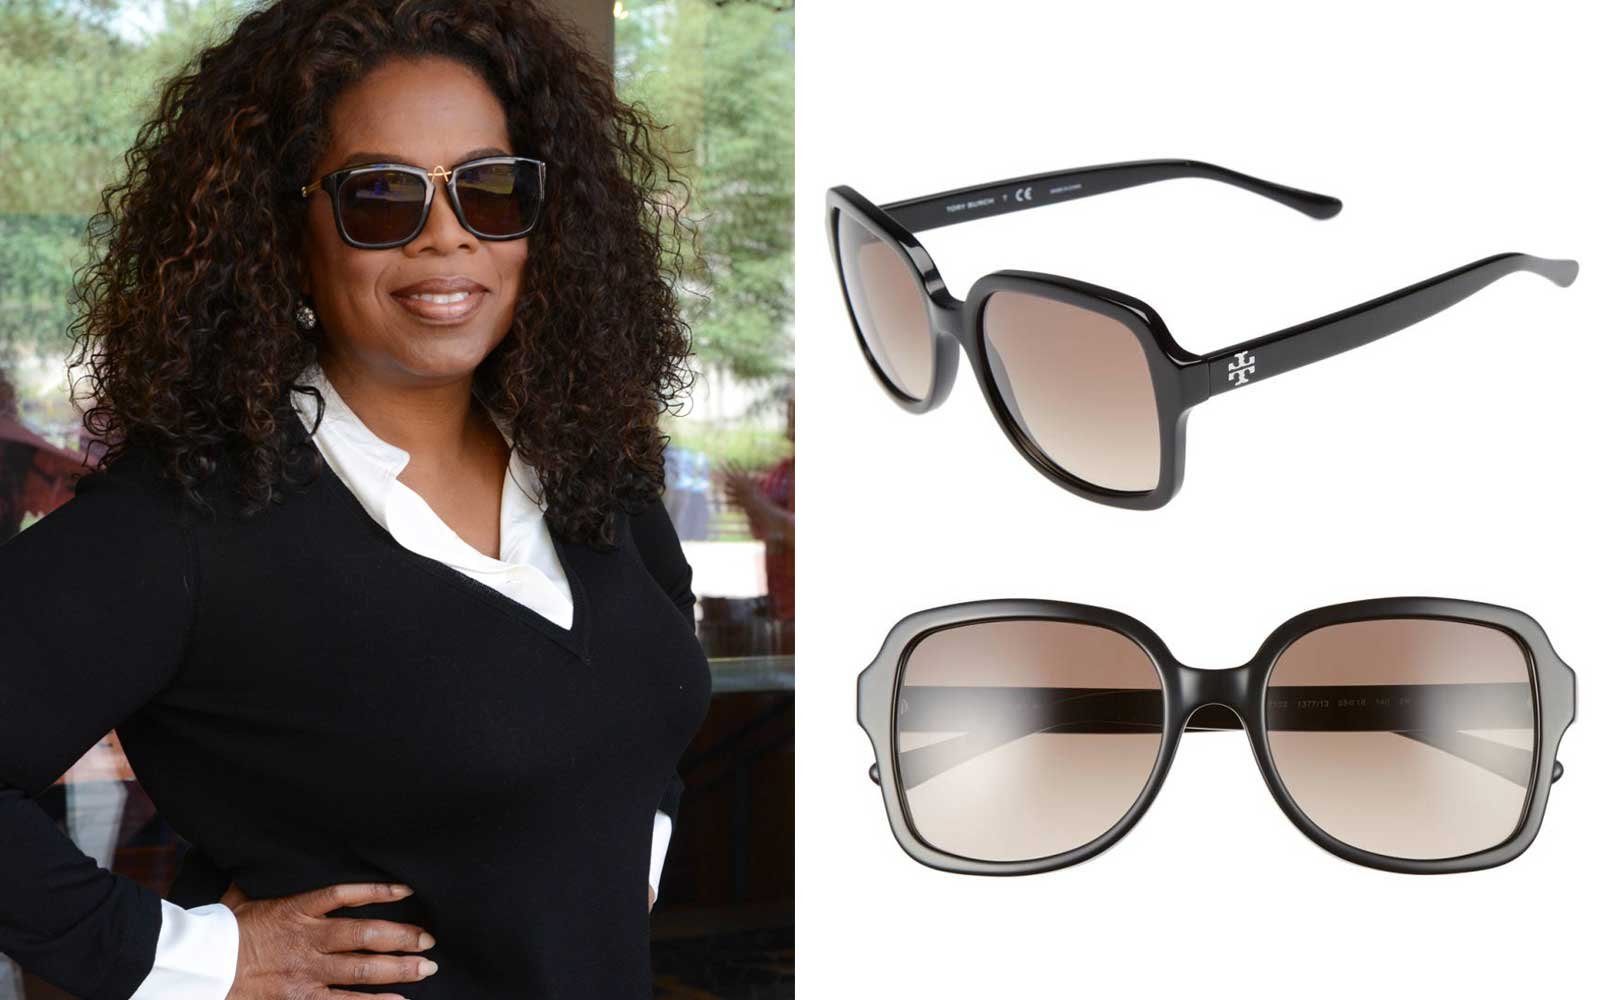 dd0667f606 The Best Sunglasses According to Celebrities